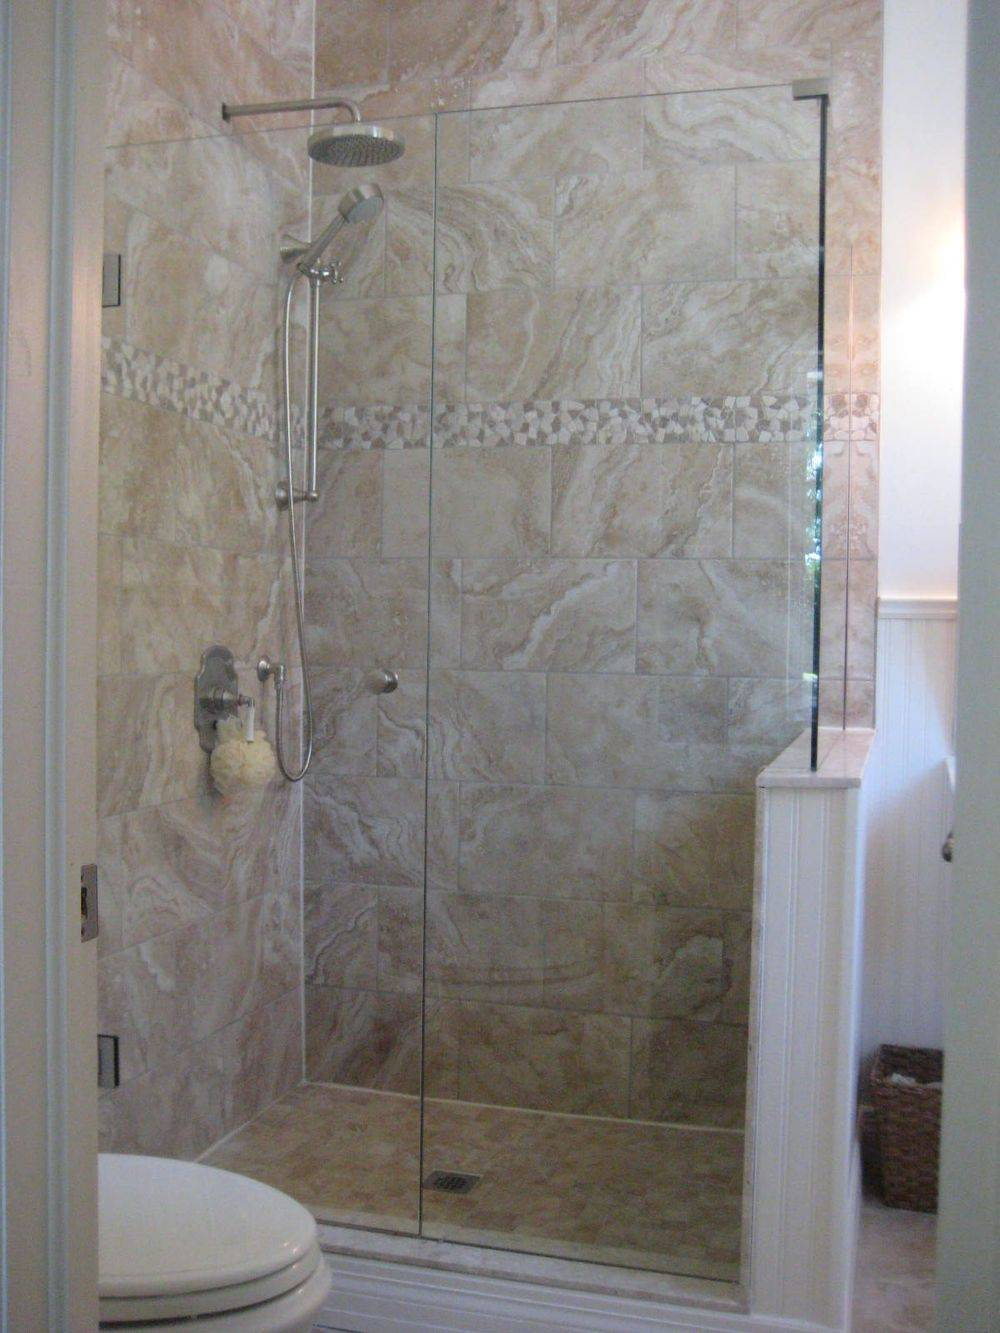 We Specialize in Custom Frameless Glass Shower Doors, Toronto, Stouffville